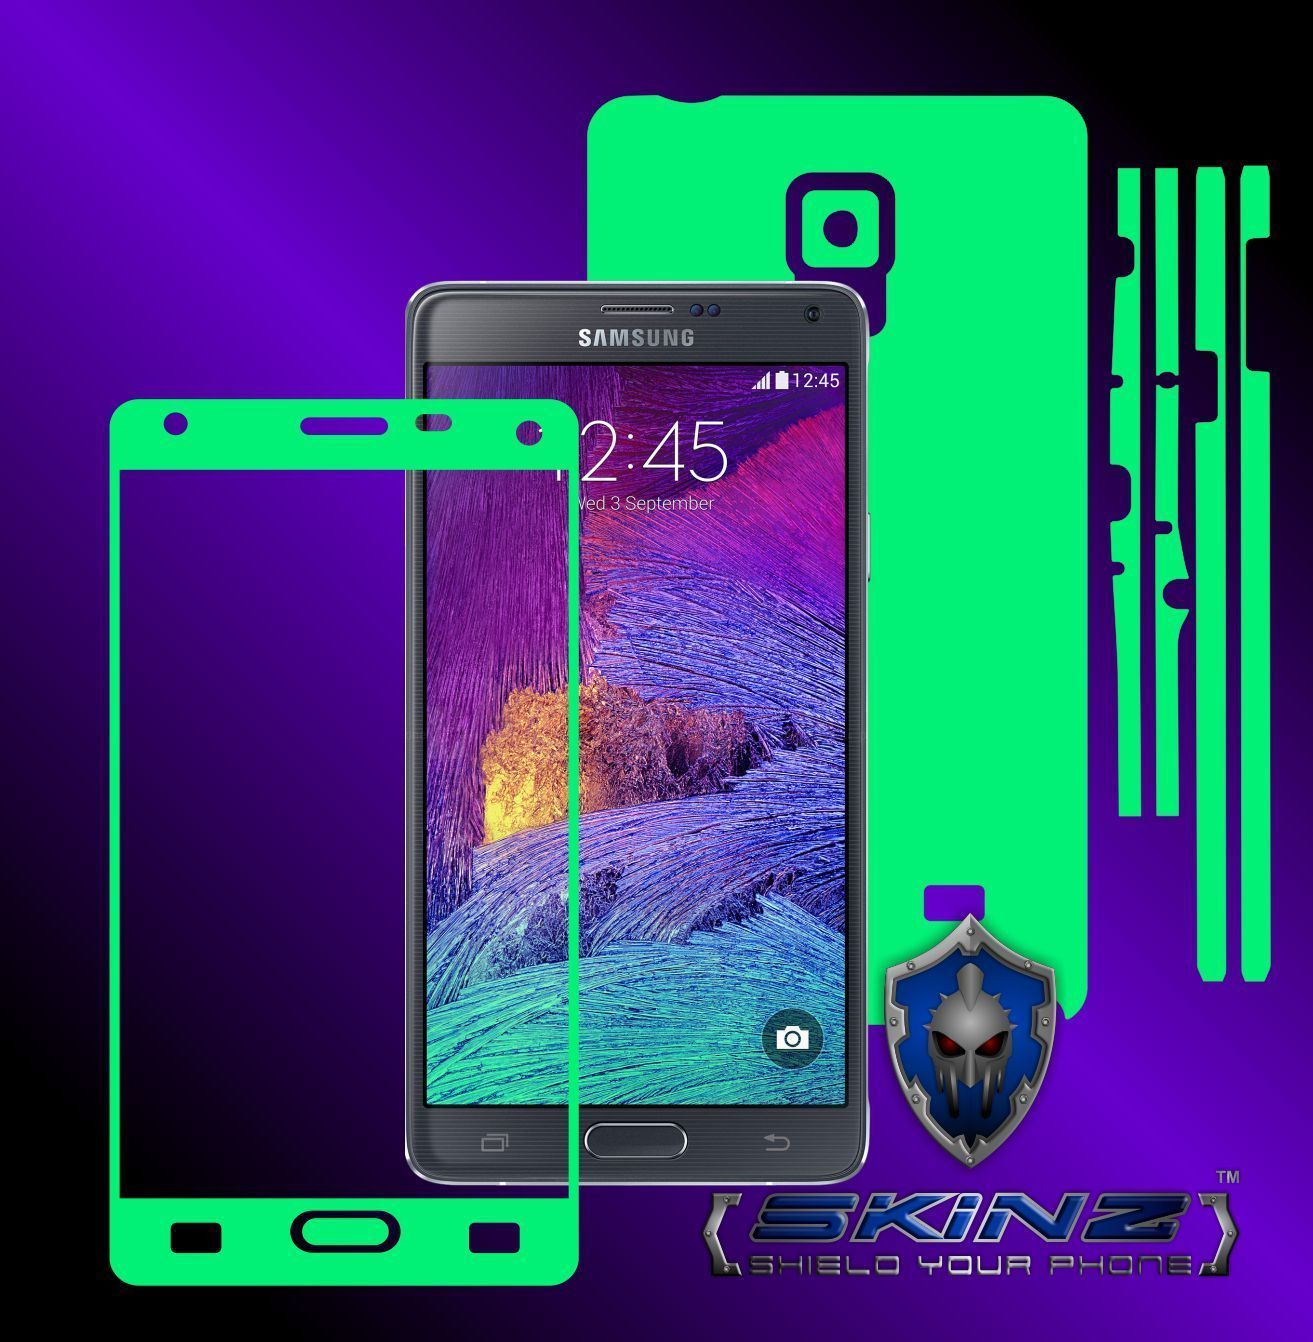 Samsung Galaxy Note 4 - Glow in the Dark Skin, Full Body Case Cover Protector